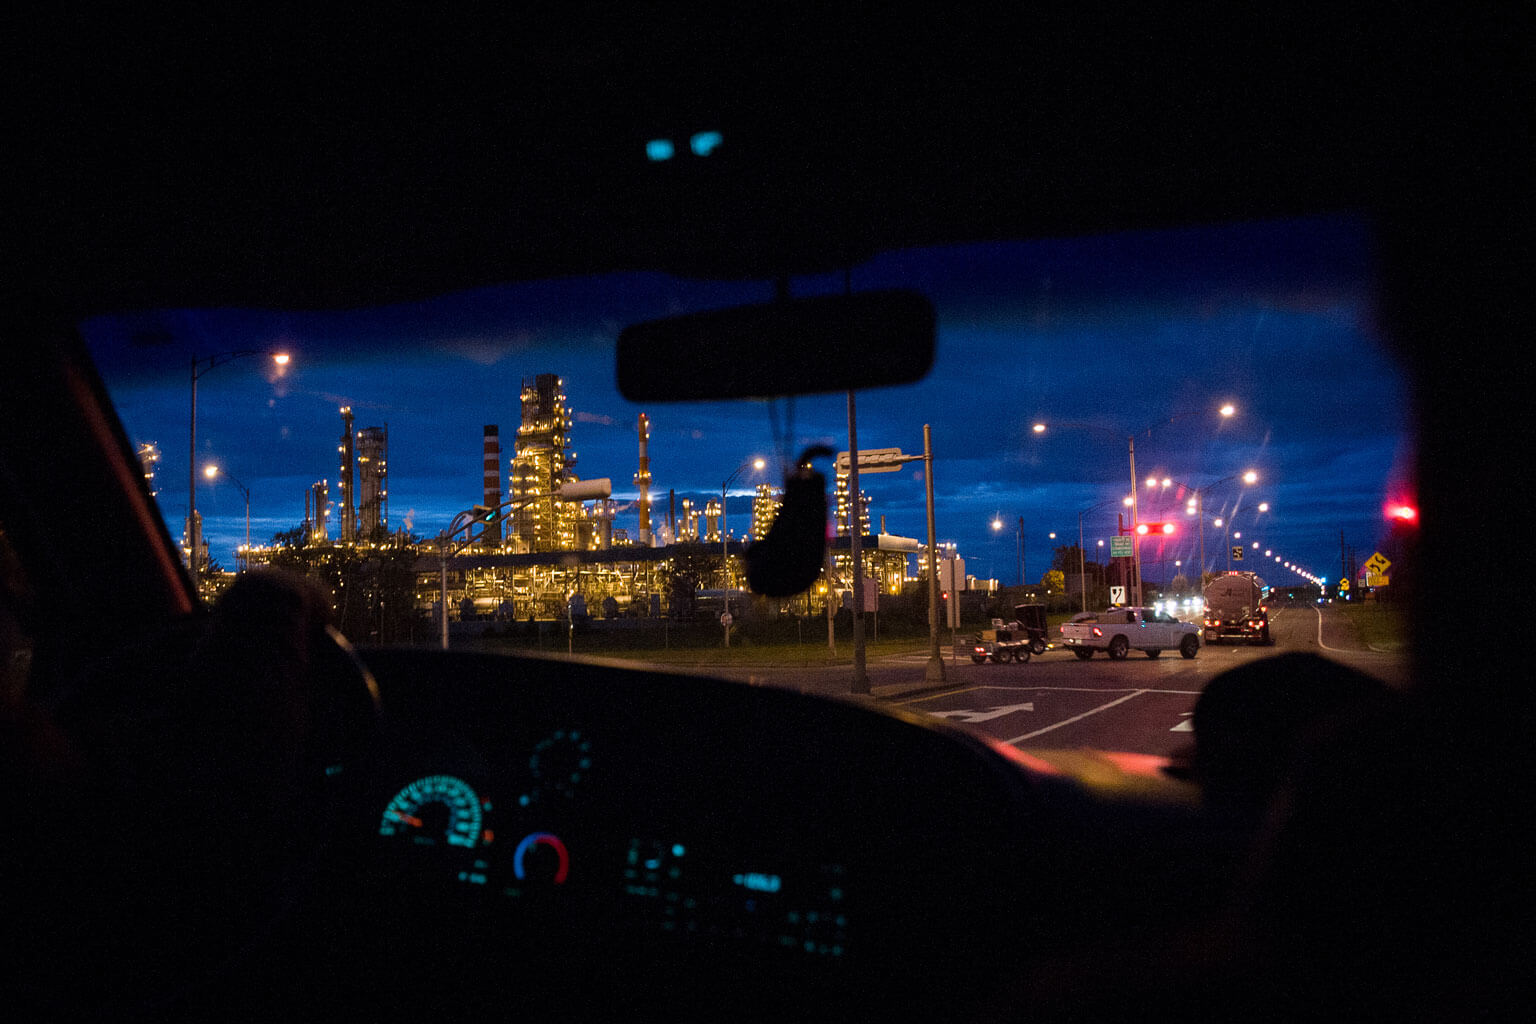 The Jean-Gaulin refinery in Lévis, Quebec, is not equipped to treat Alberta bitumen but could be fed with light crude such as those from the Bakken shale in North Dakota.